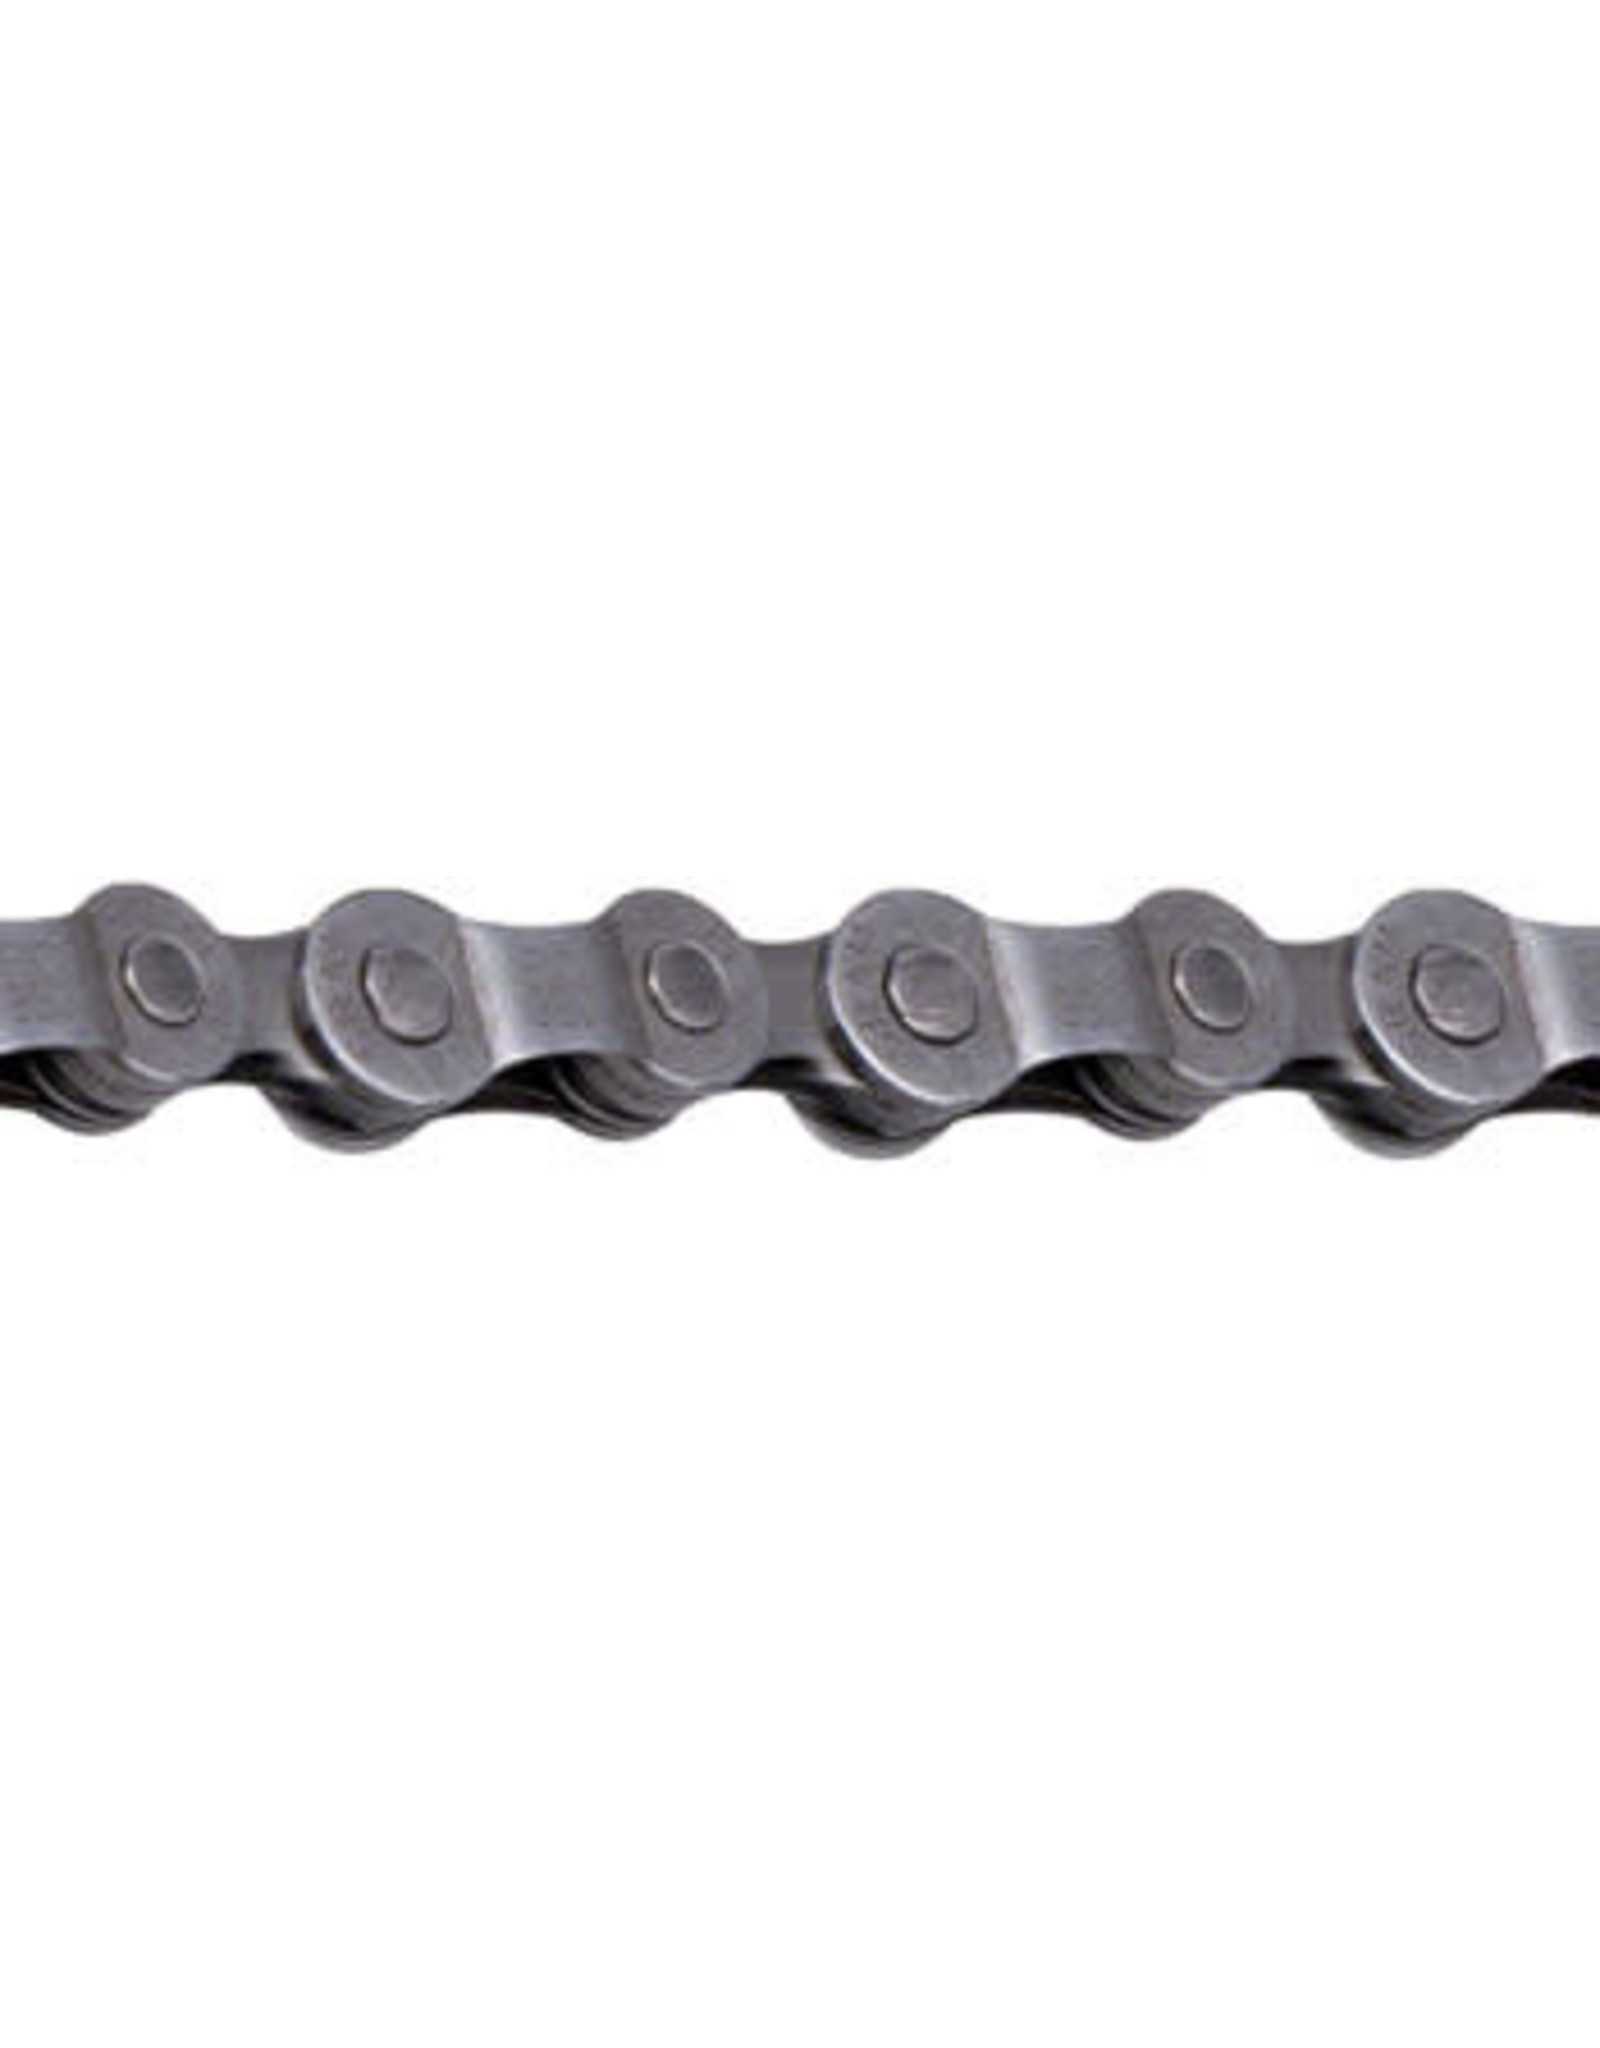 SRAM SRAM PC-850 Chain - 6, 7, 8-Speed, 114 Links, Silver